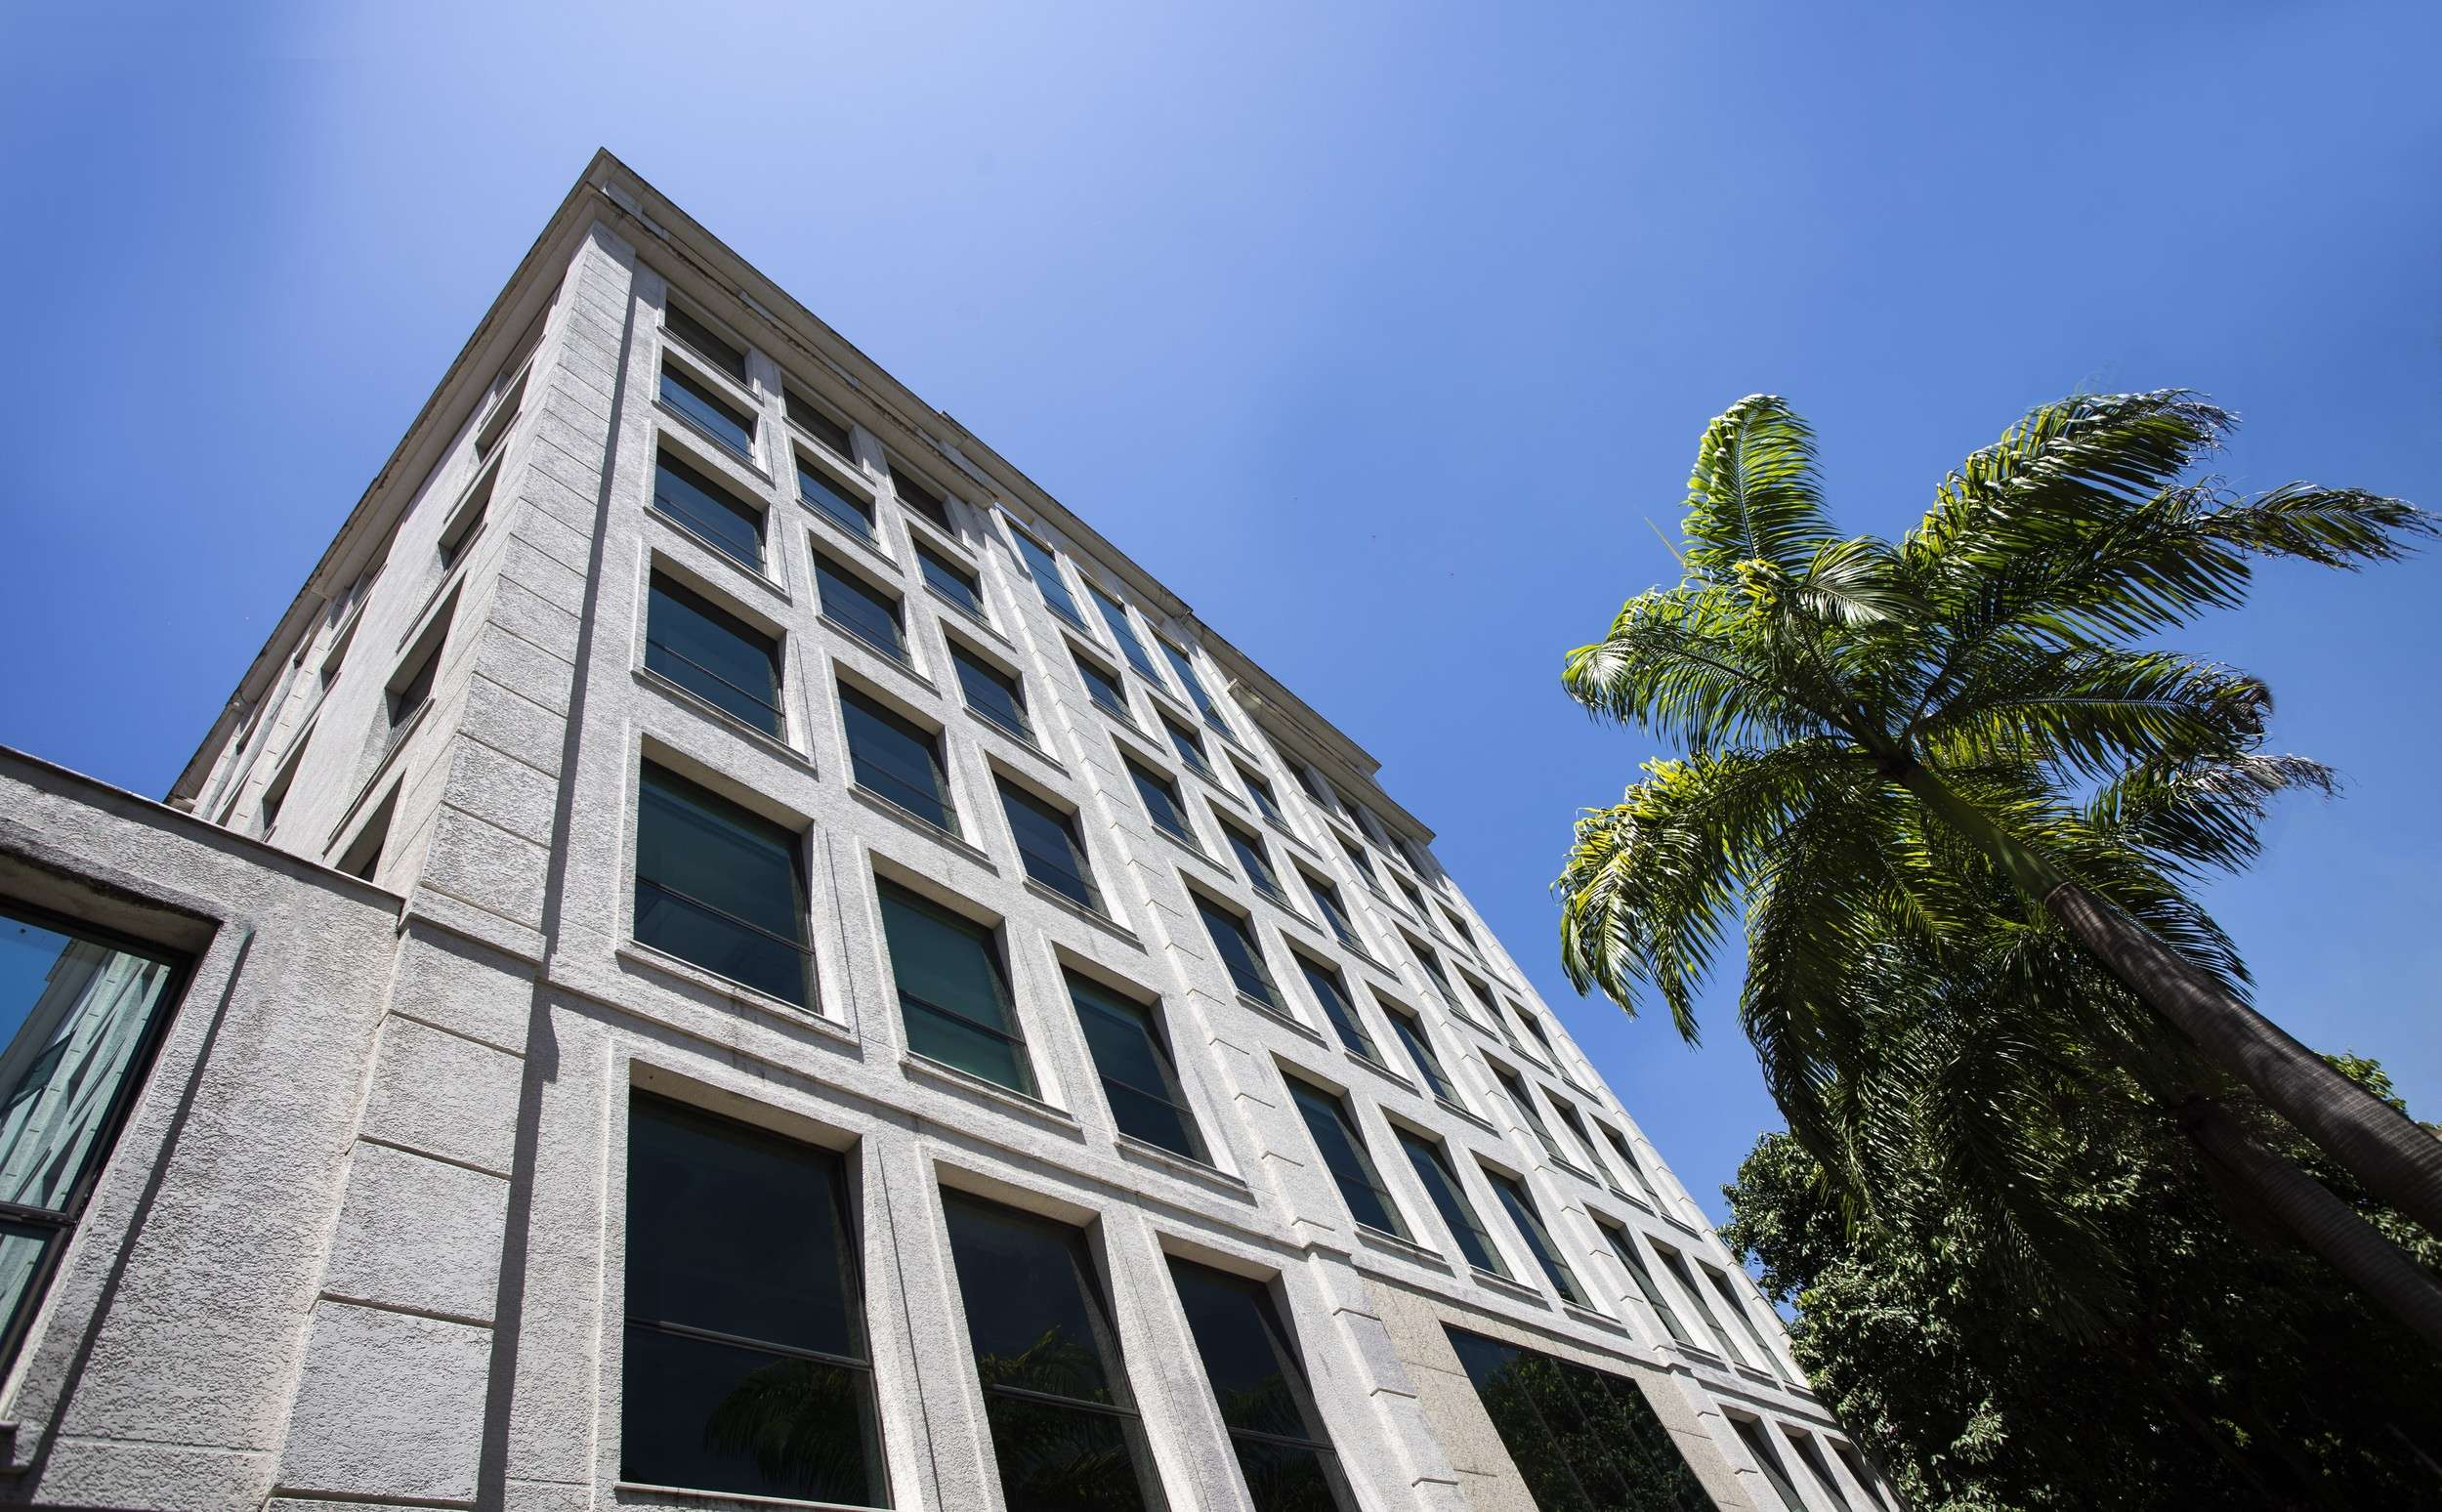 A six story tall building that is made out of concrete and block with windows looking out a palm tre